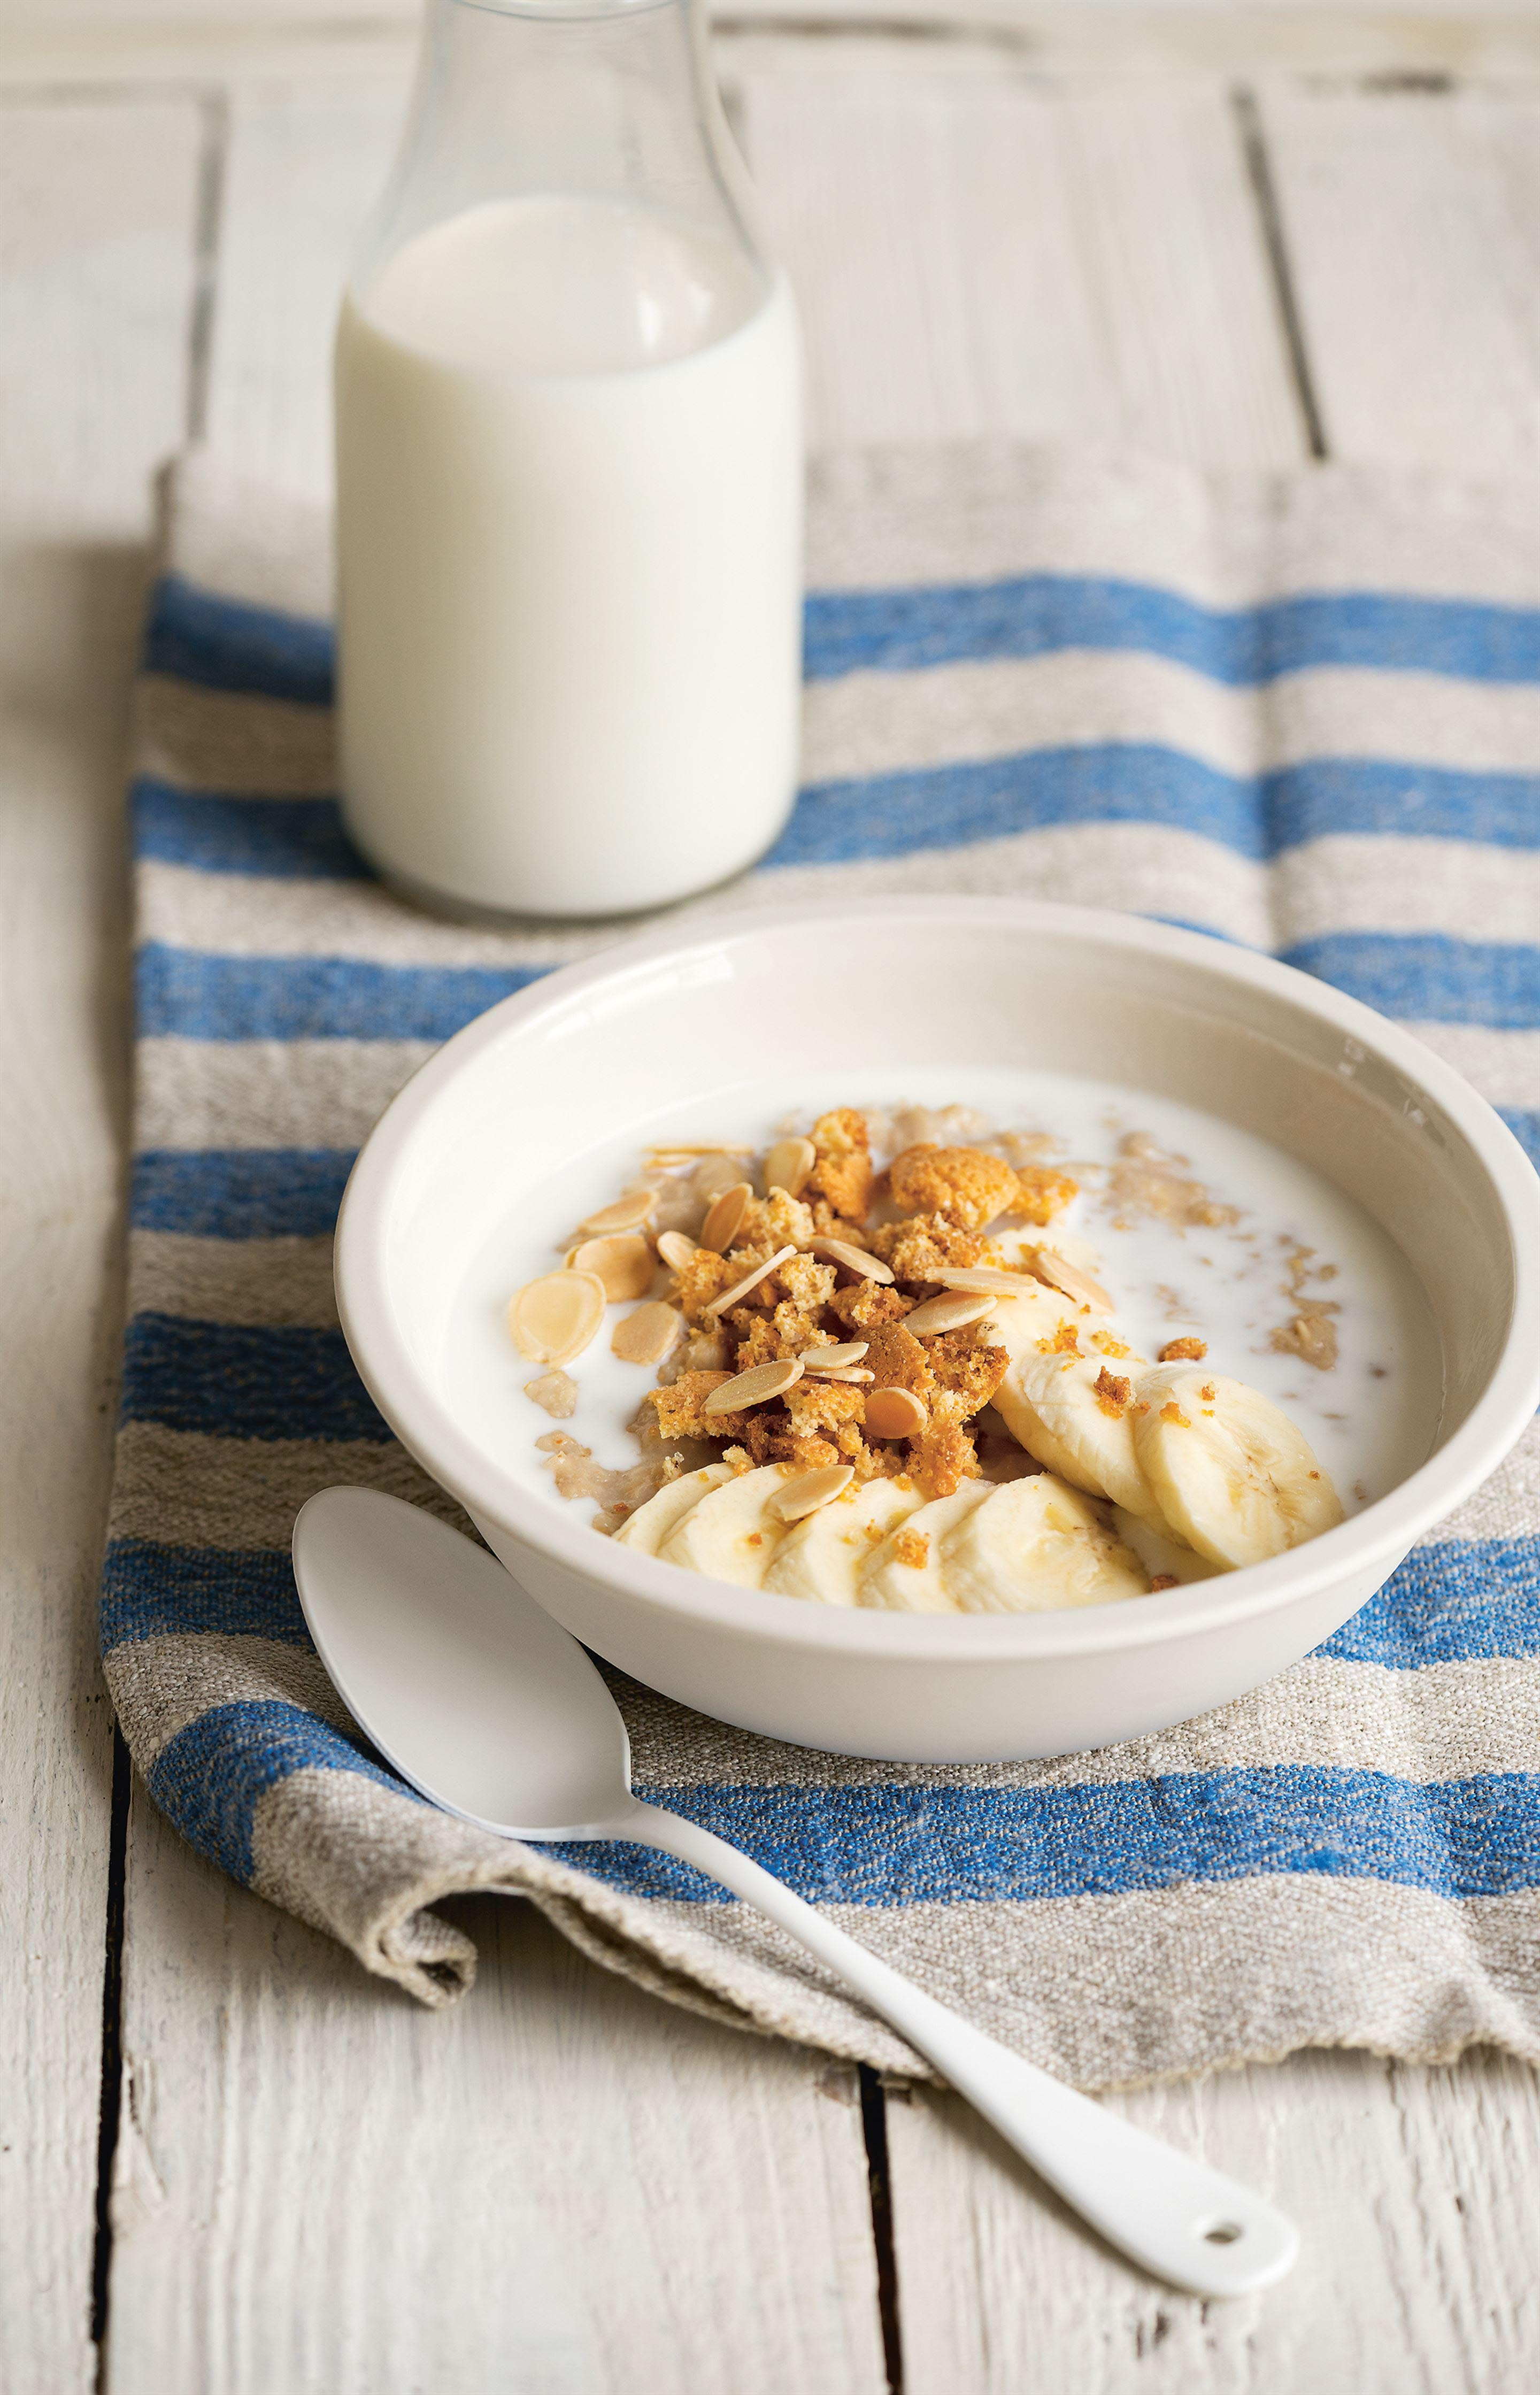 Banana porridge with almonds + amaretti